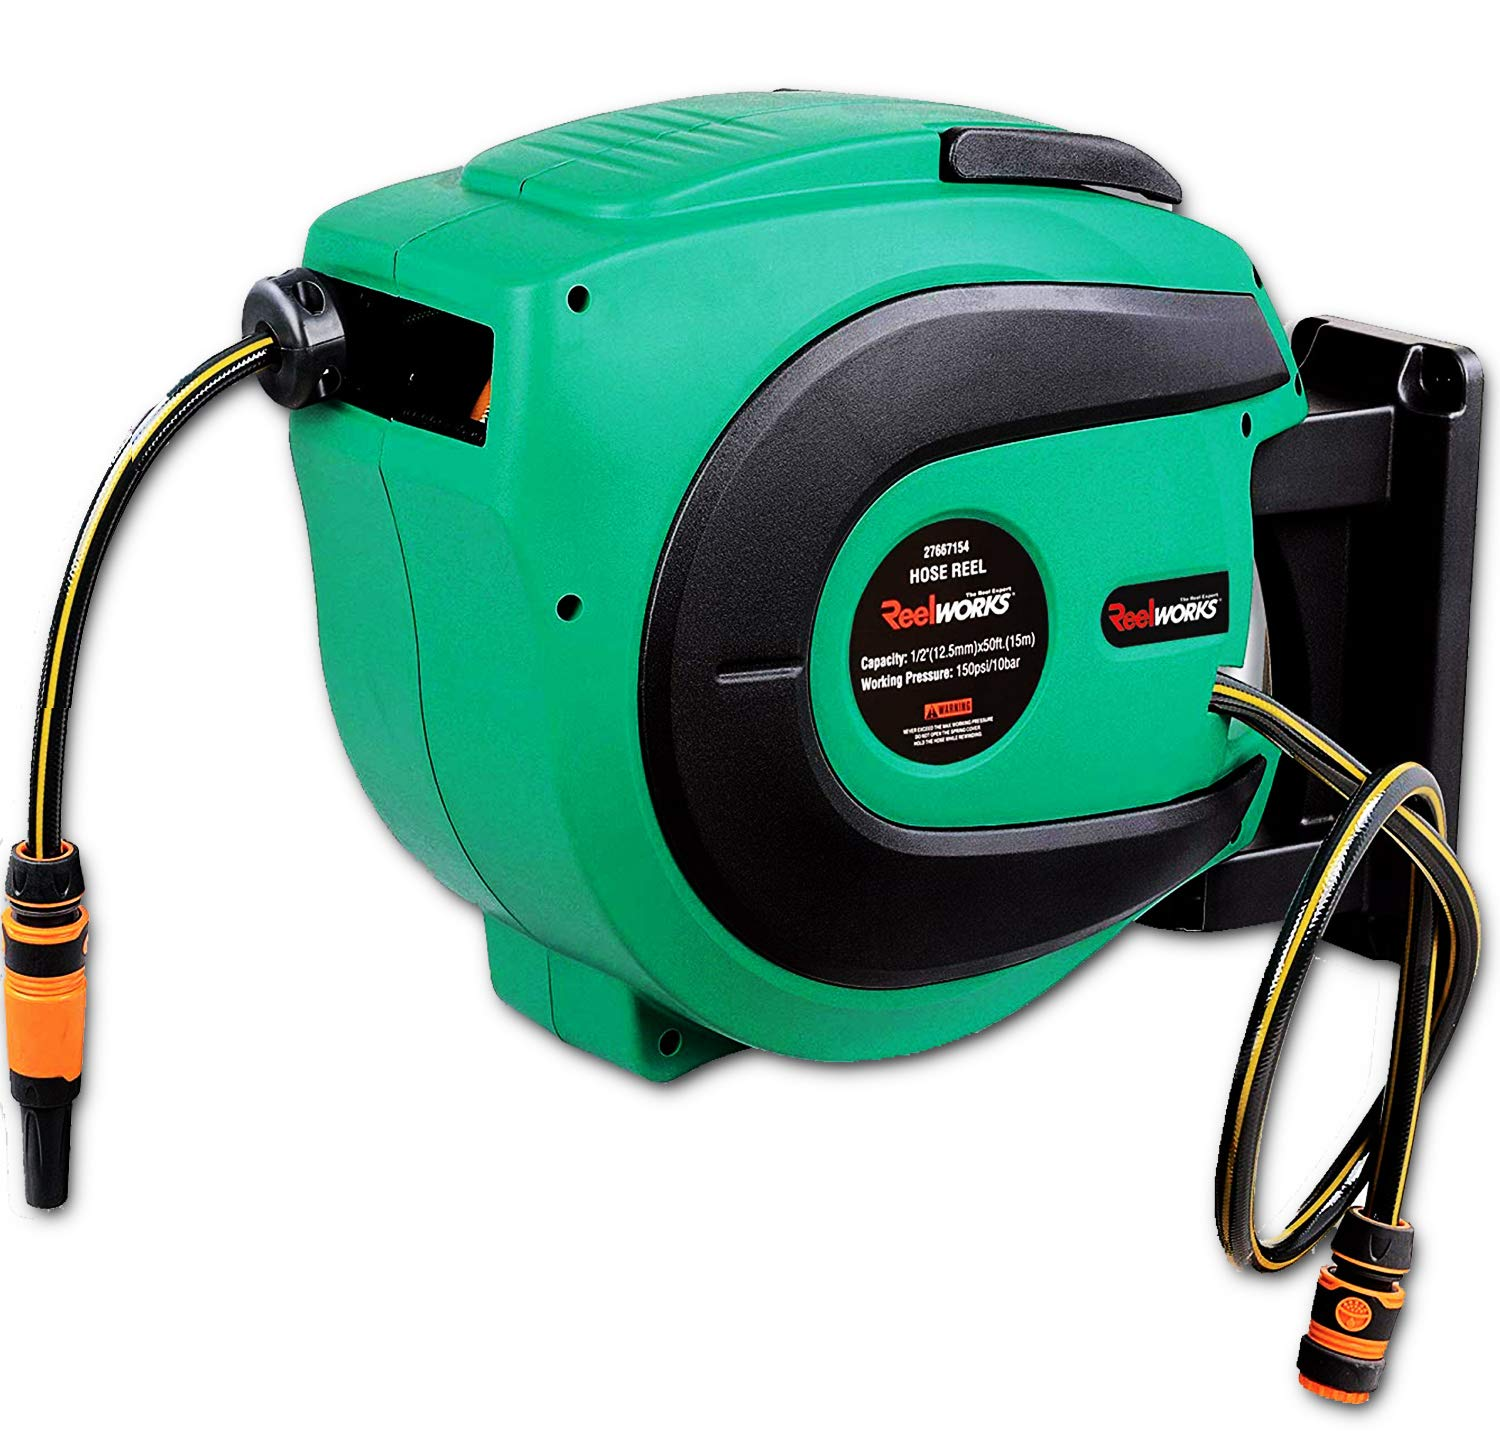 ReelWorks Water Hose Reel Retractable Elite 1/2'' Inch x 50' Feet Long Premium Commercial Flex PVC Hose Heavy Duty Spring Driven Industrial with PVC Nozzle and Quick Disconnects for Garden and Lawn by ReelWorks